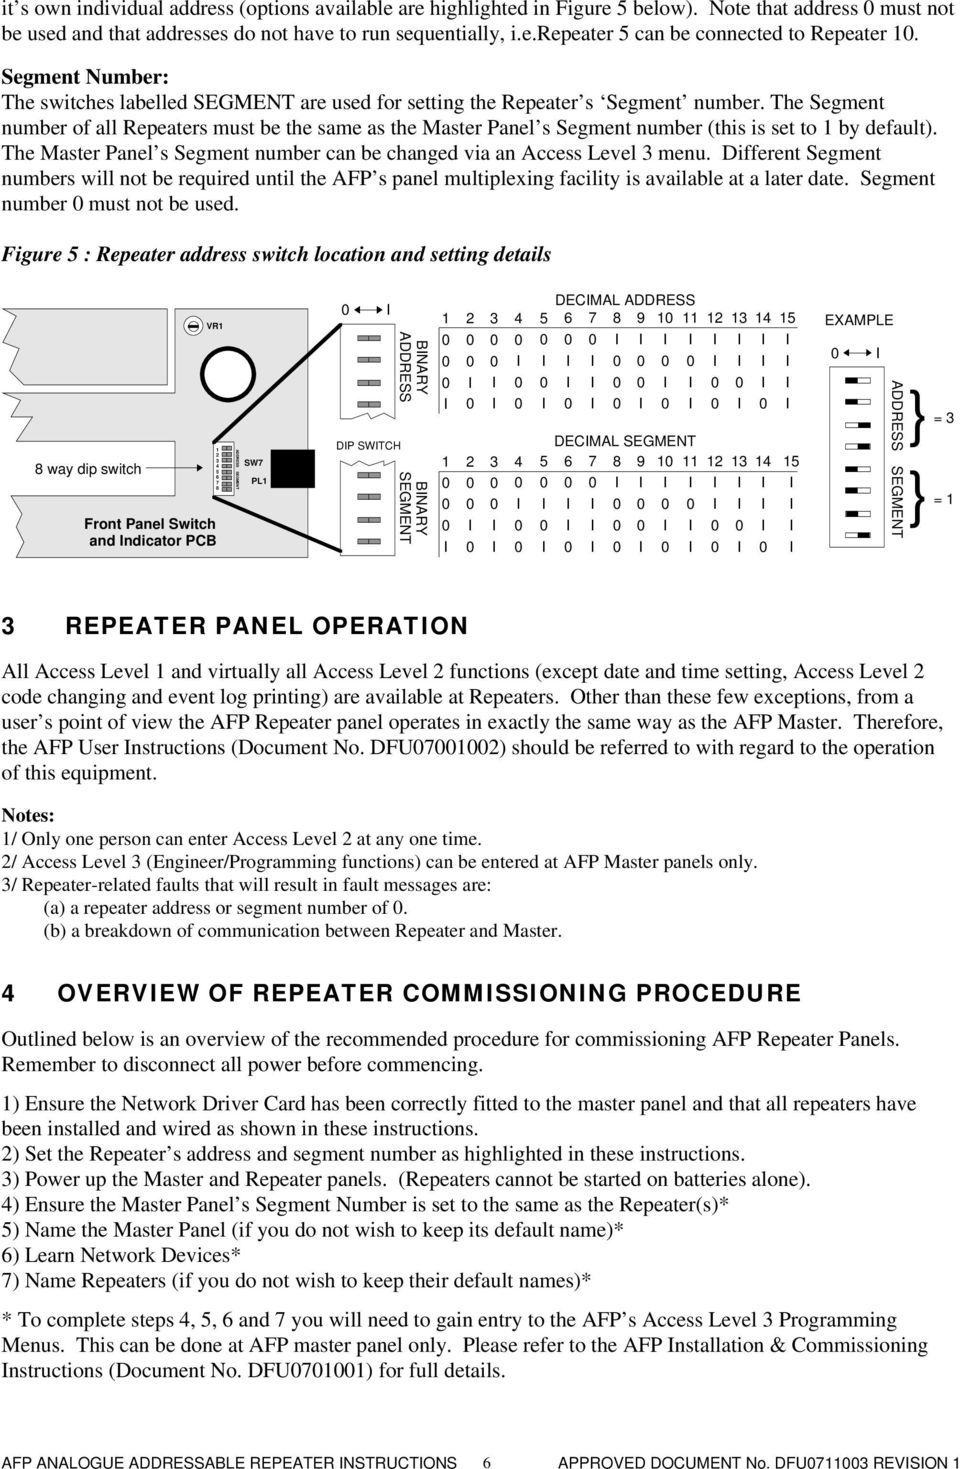 Afp710 Fire Repeater Panel Installation Instructions Pdf Quantec Wiring The Master S Segment Number Can Be Changed Via An Ccess Level 3 Menu